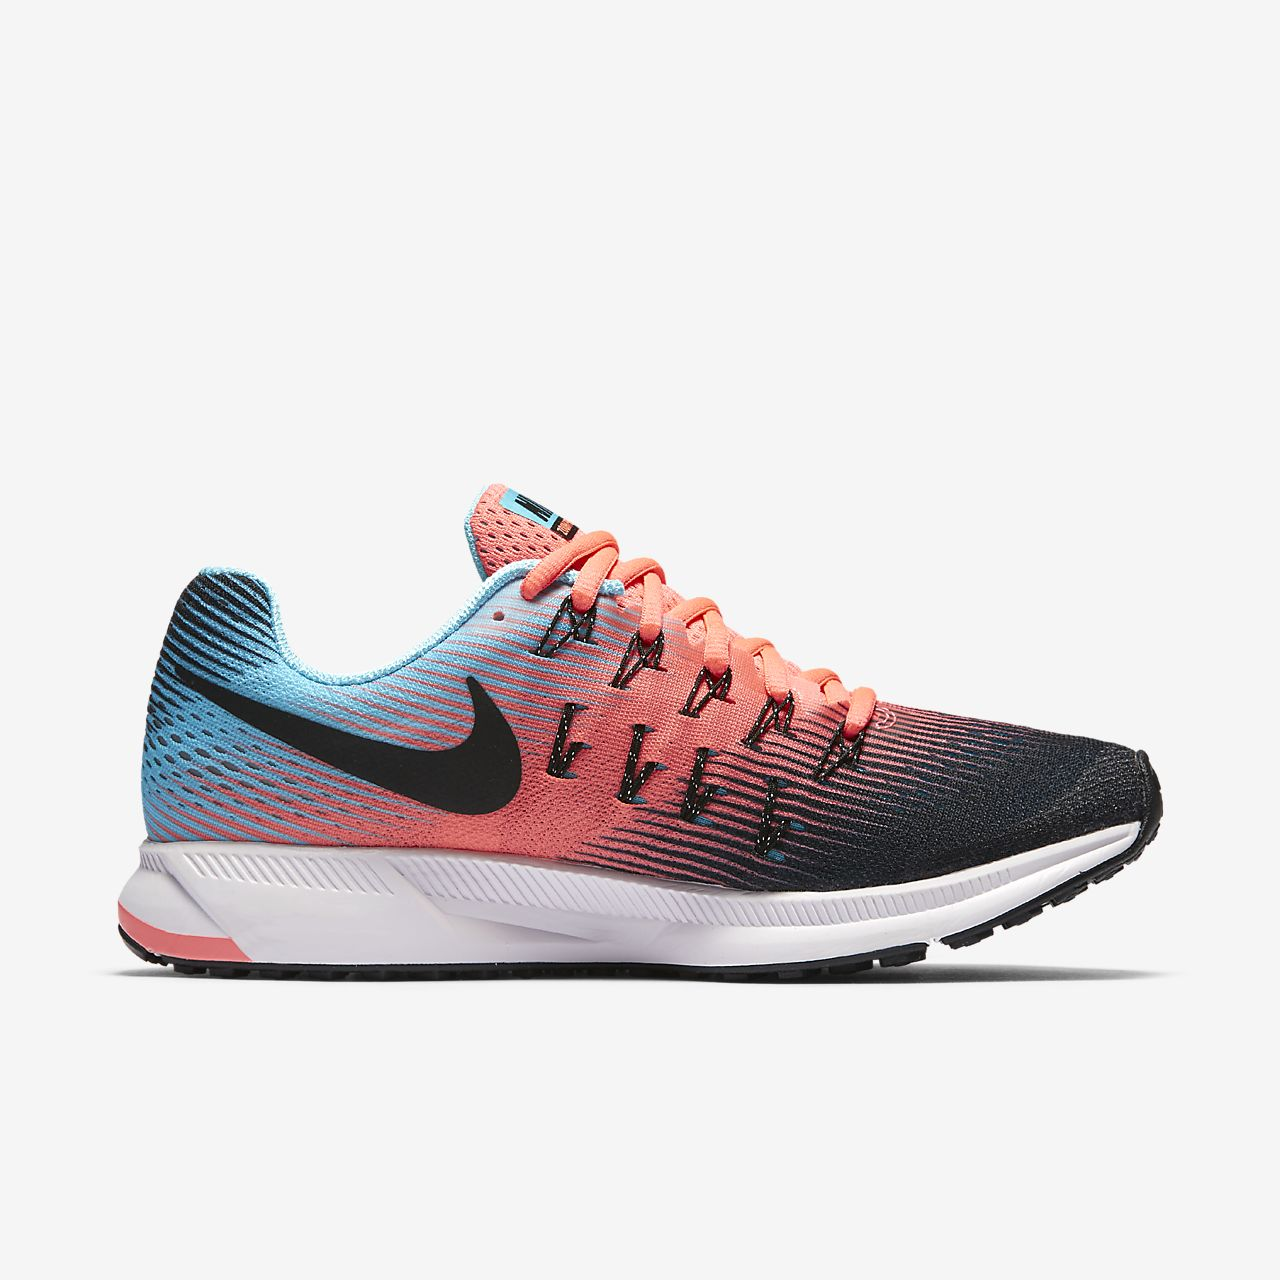 nike shoes zoom pegasus 33' sneaker girls collection 907290